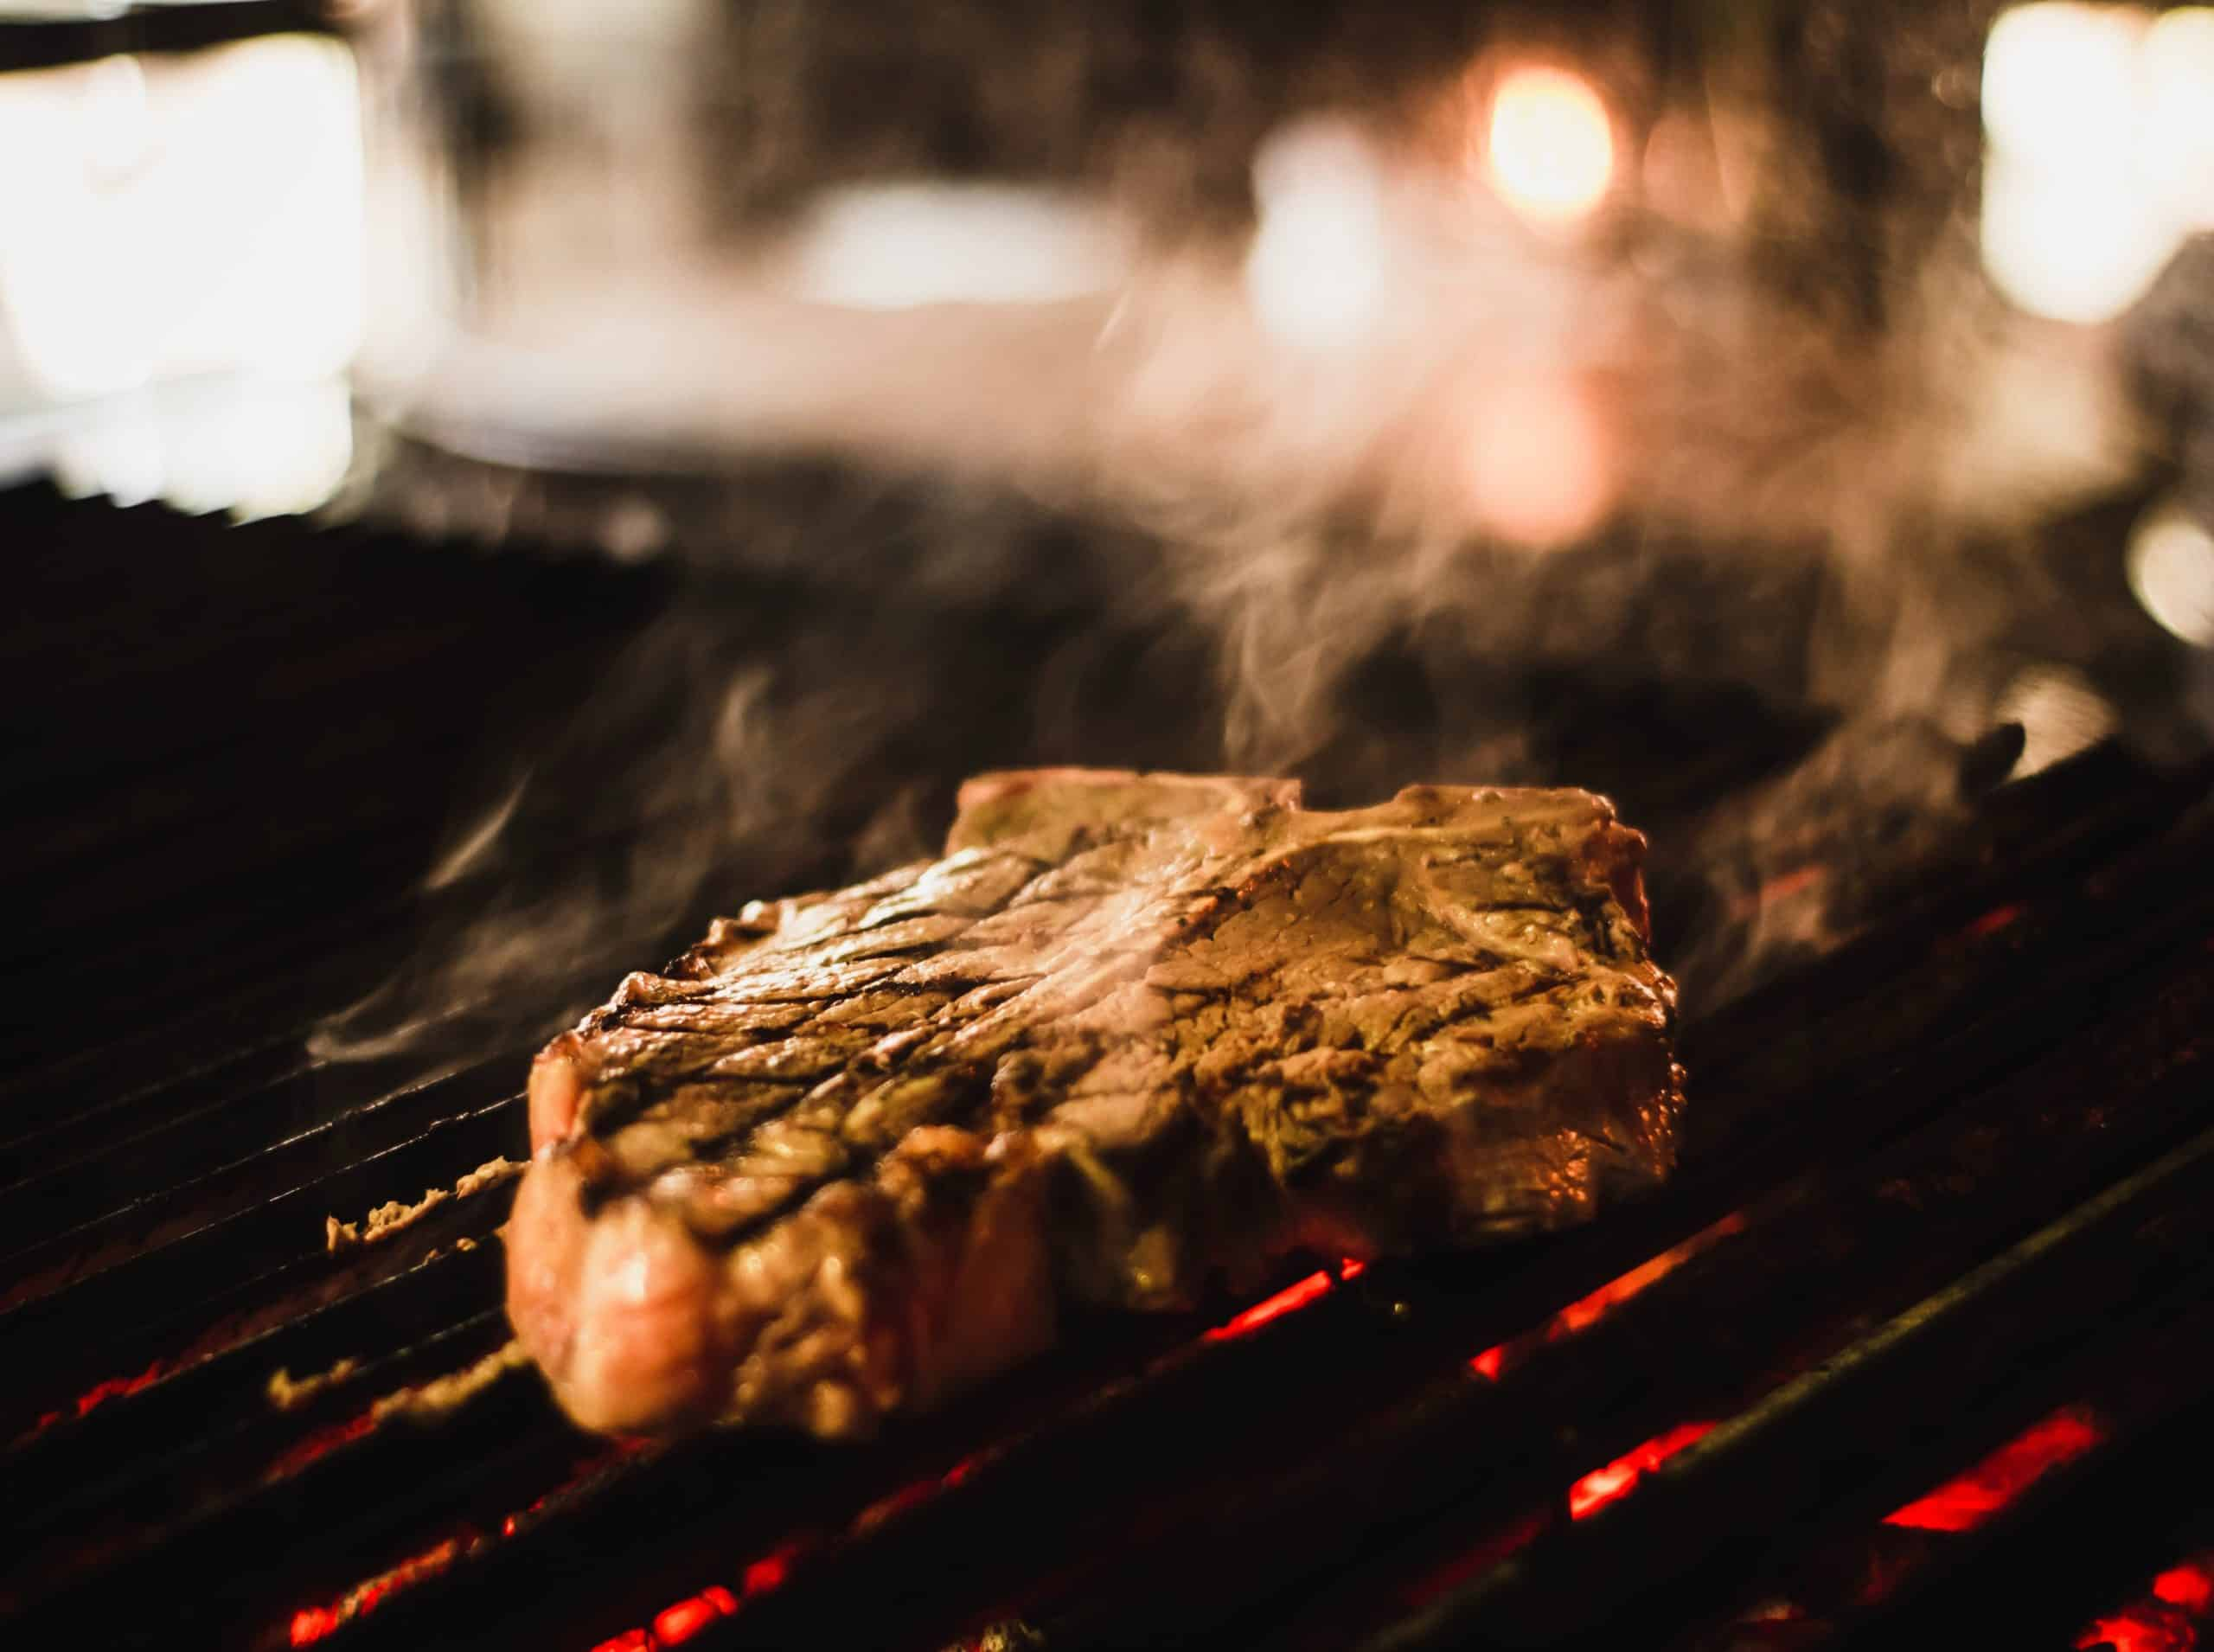 Traeger Grilling: Surf n' Turf! August 26th